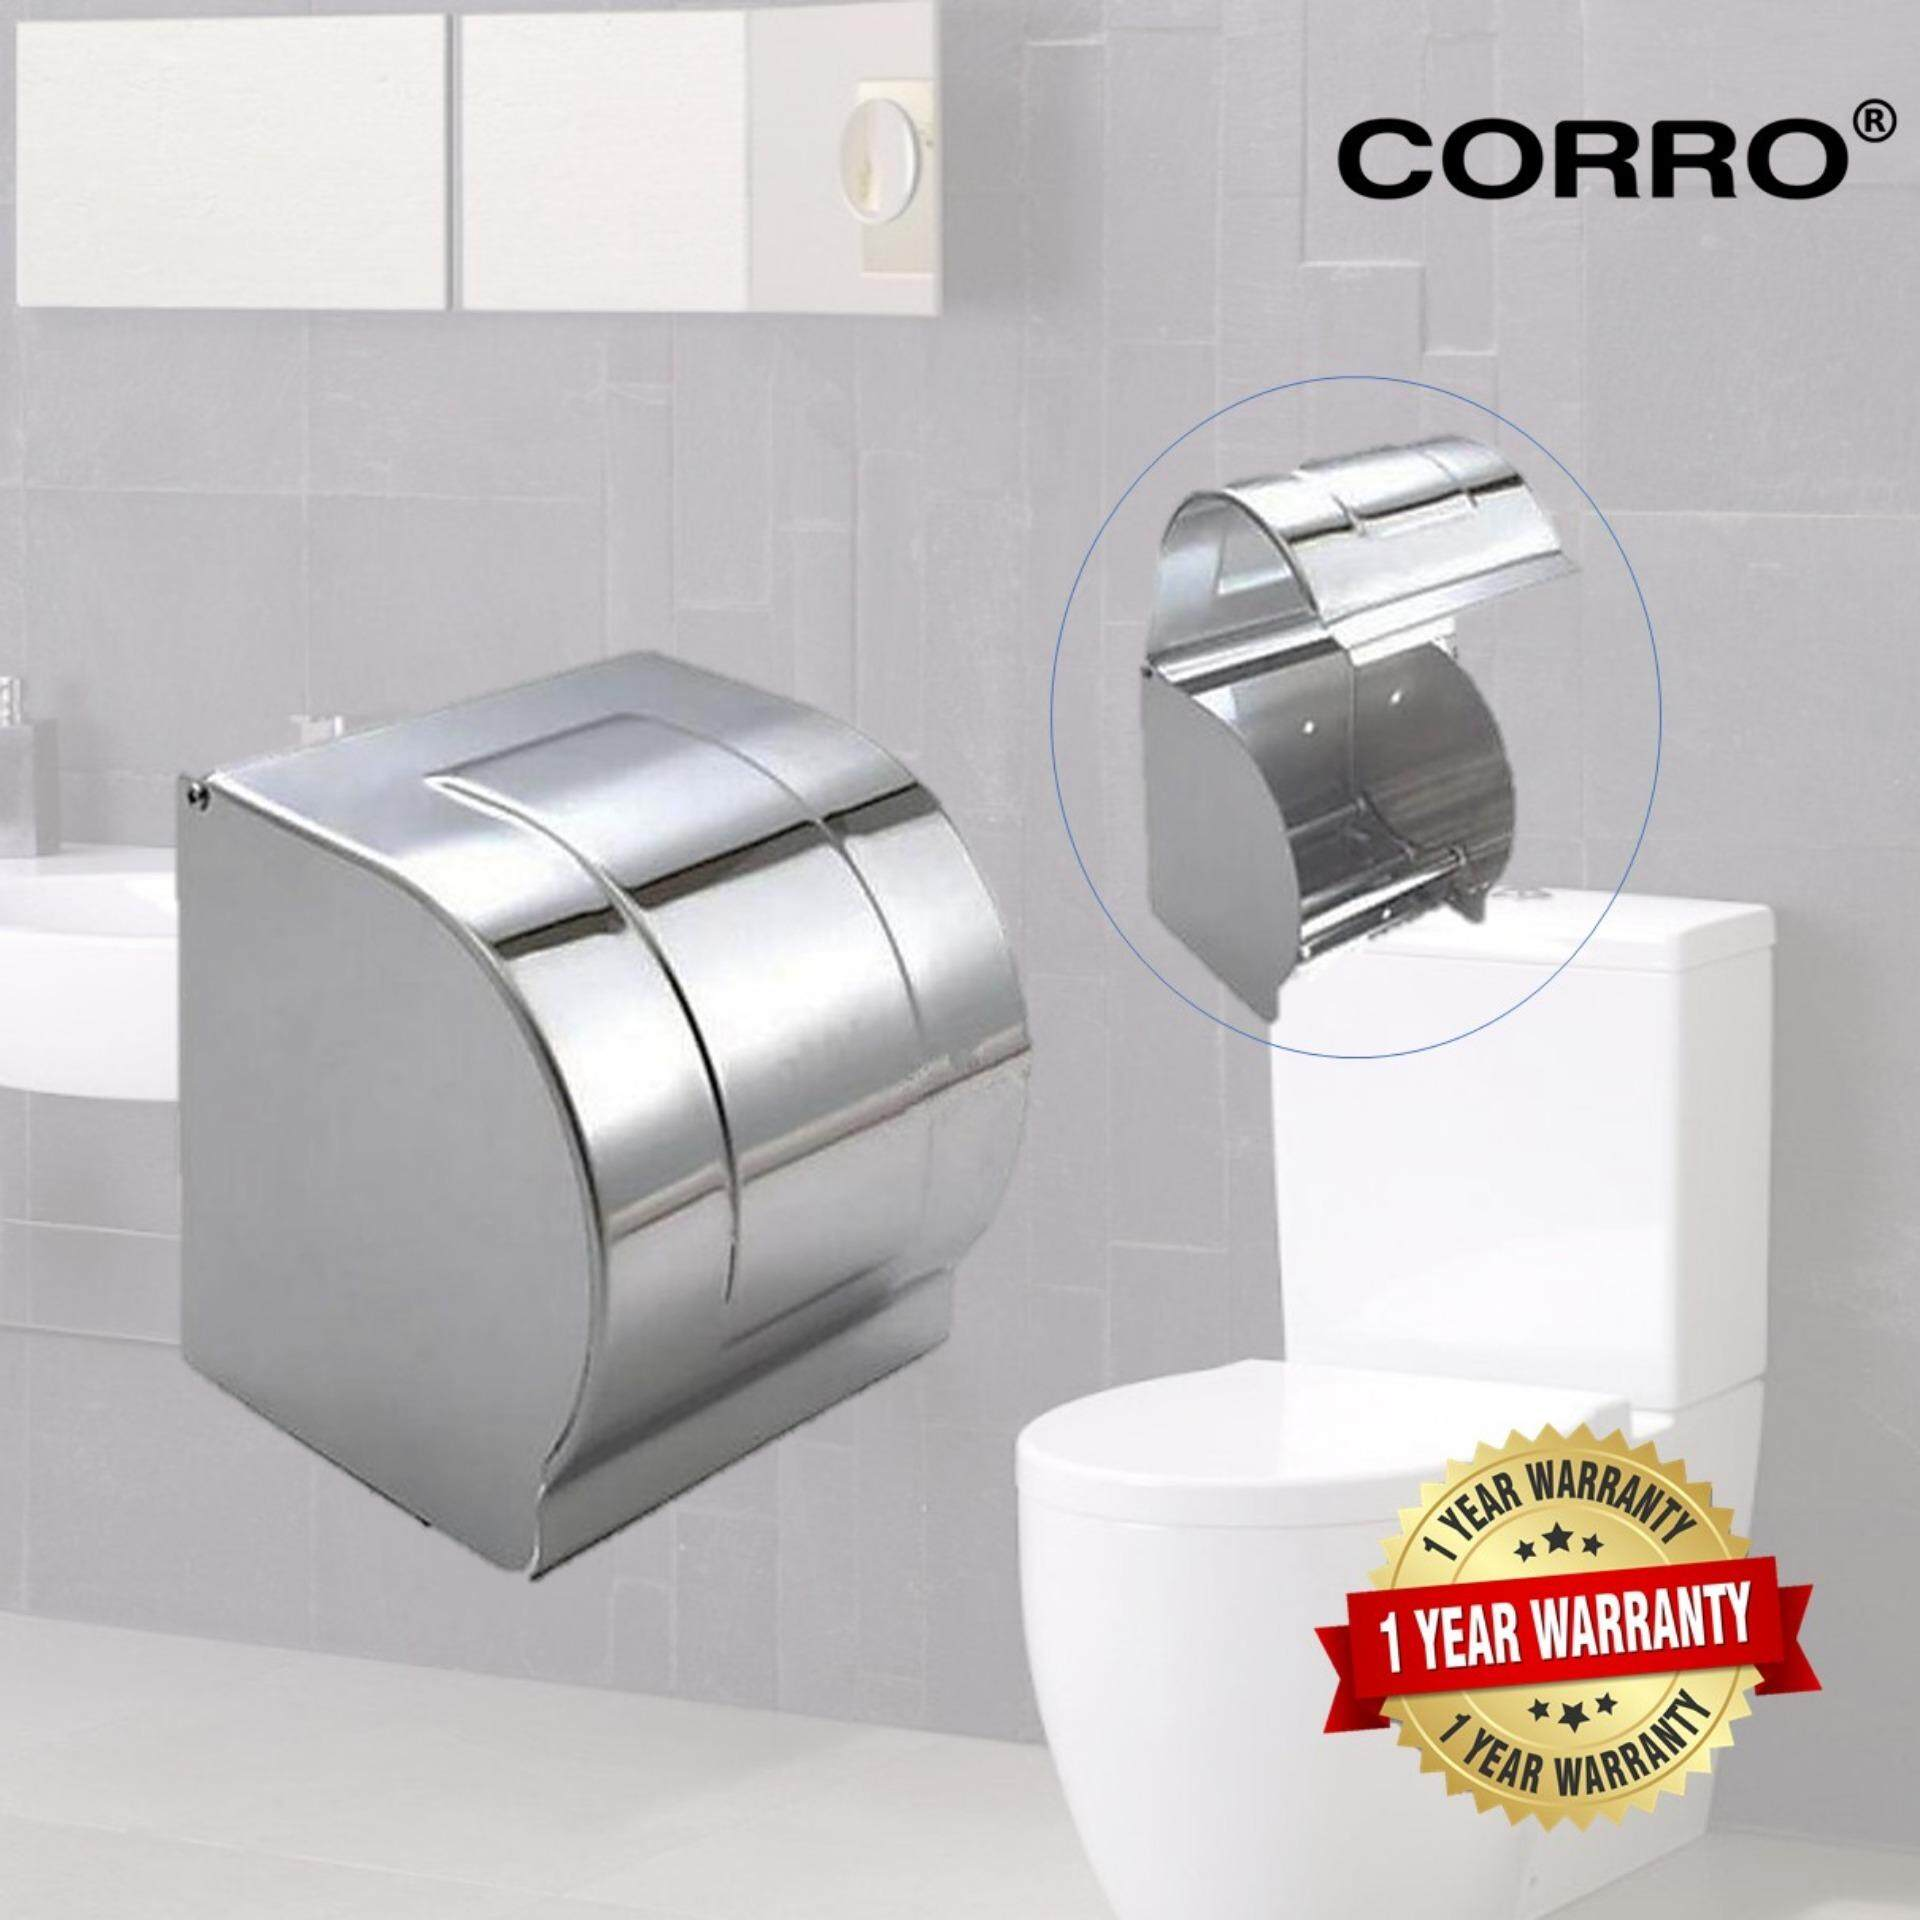 CORRO High Quality SUS304 Stainless Steel Bathroom Paper Holder